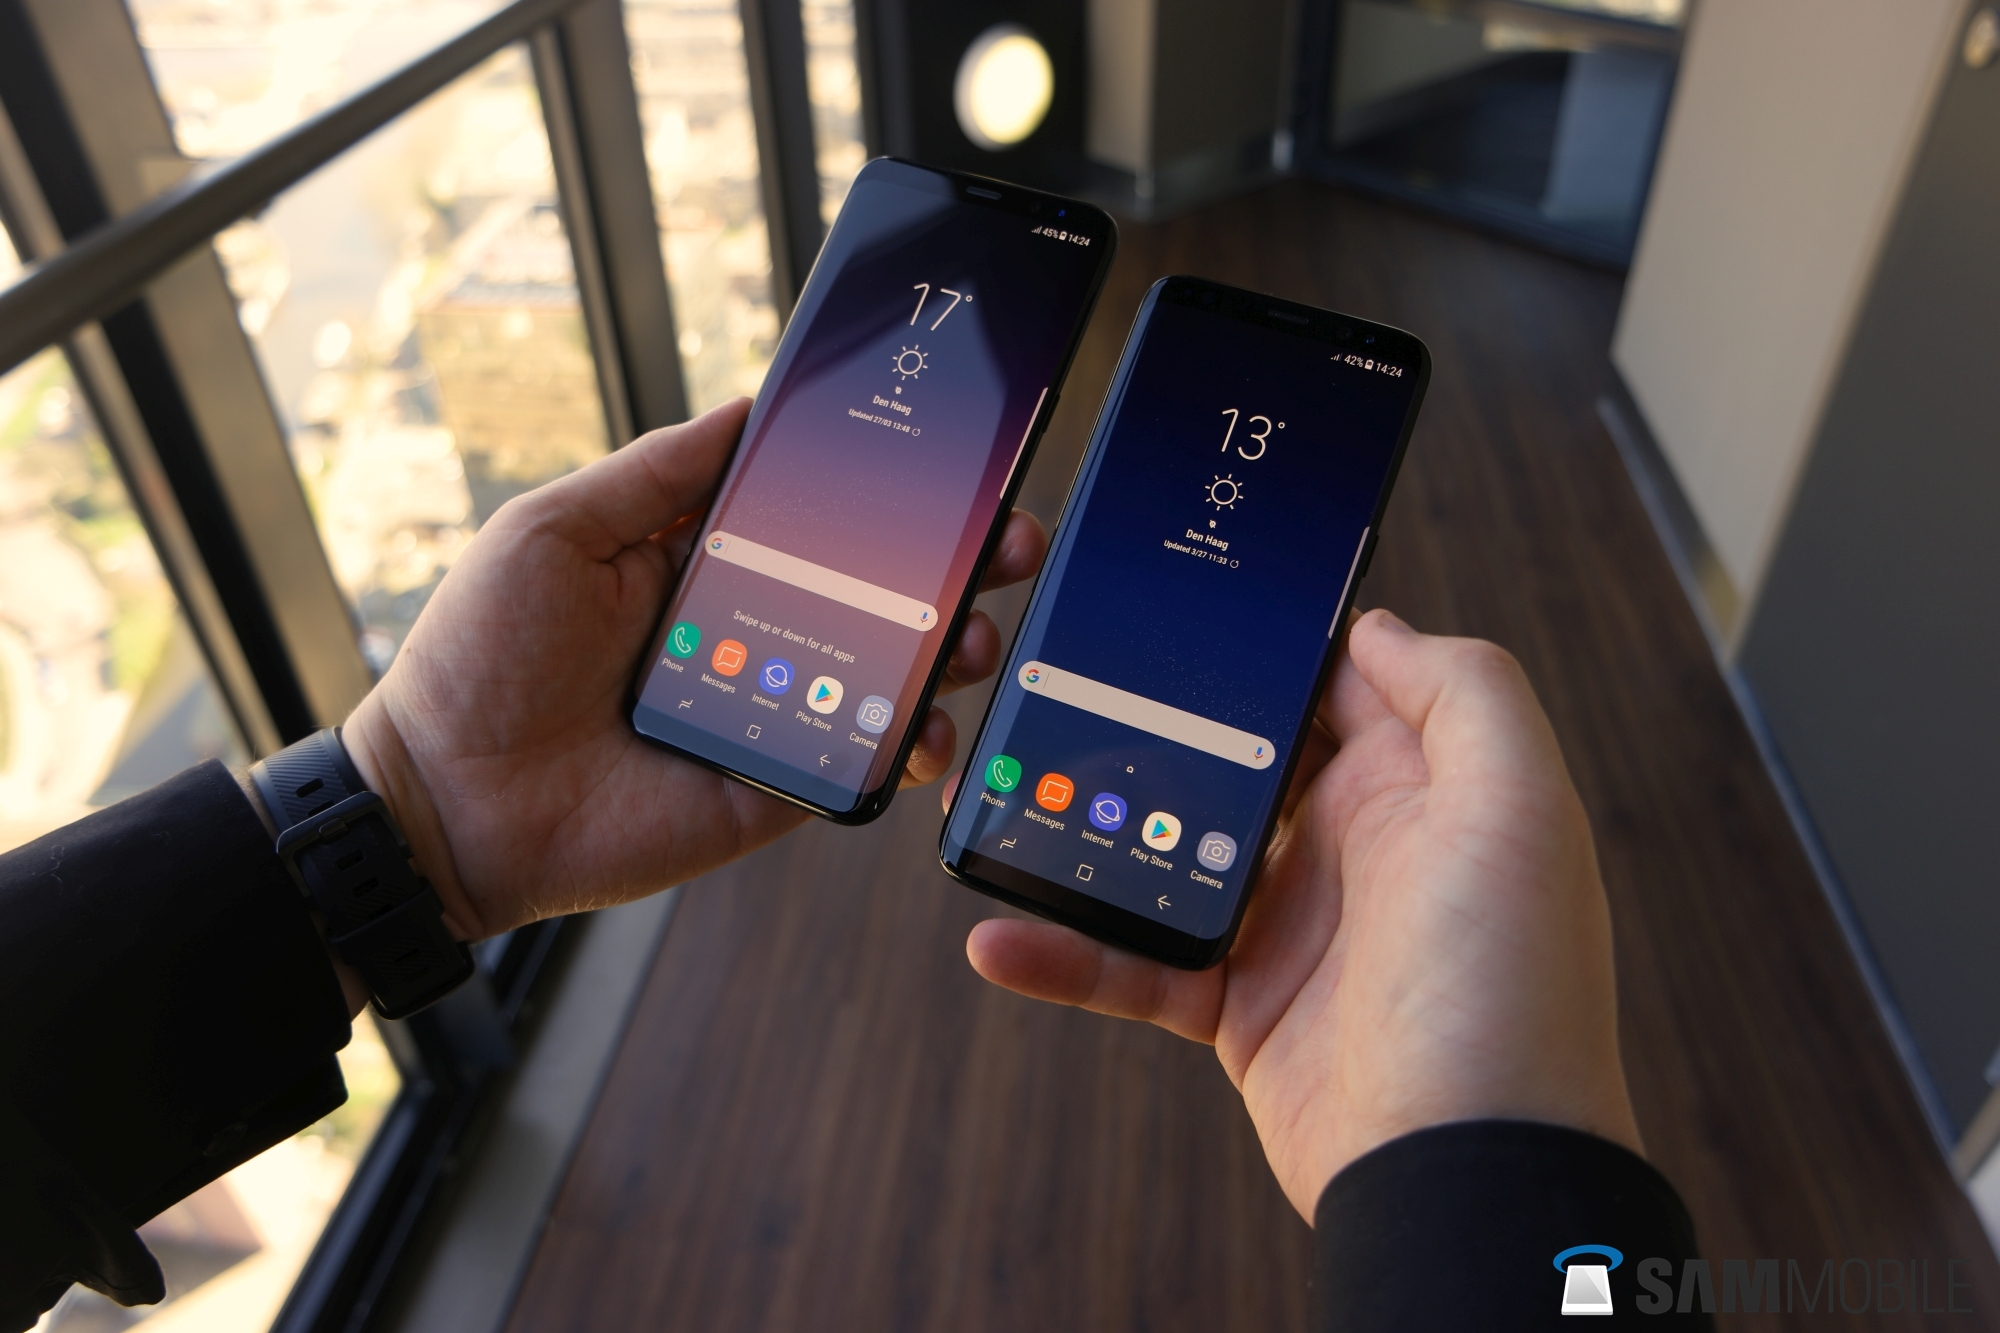 samsung 39 s aim for perfection seems to have gotten weak with the galaxy s8 sammobile sammobile. Black Bedroom Furniture Sets. Home Design Ideas